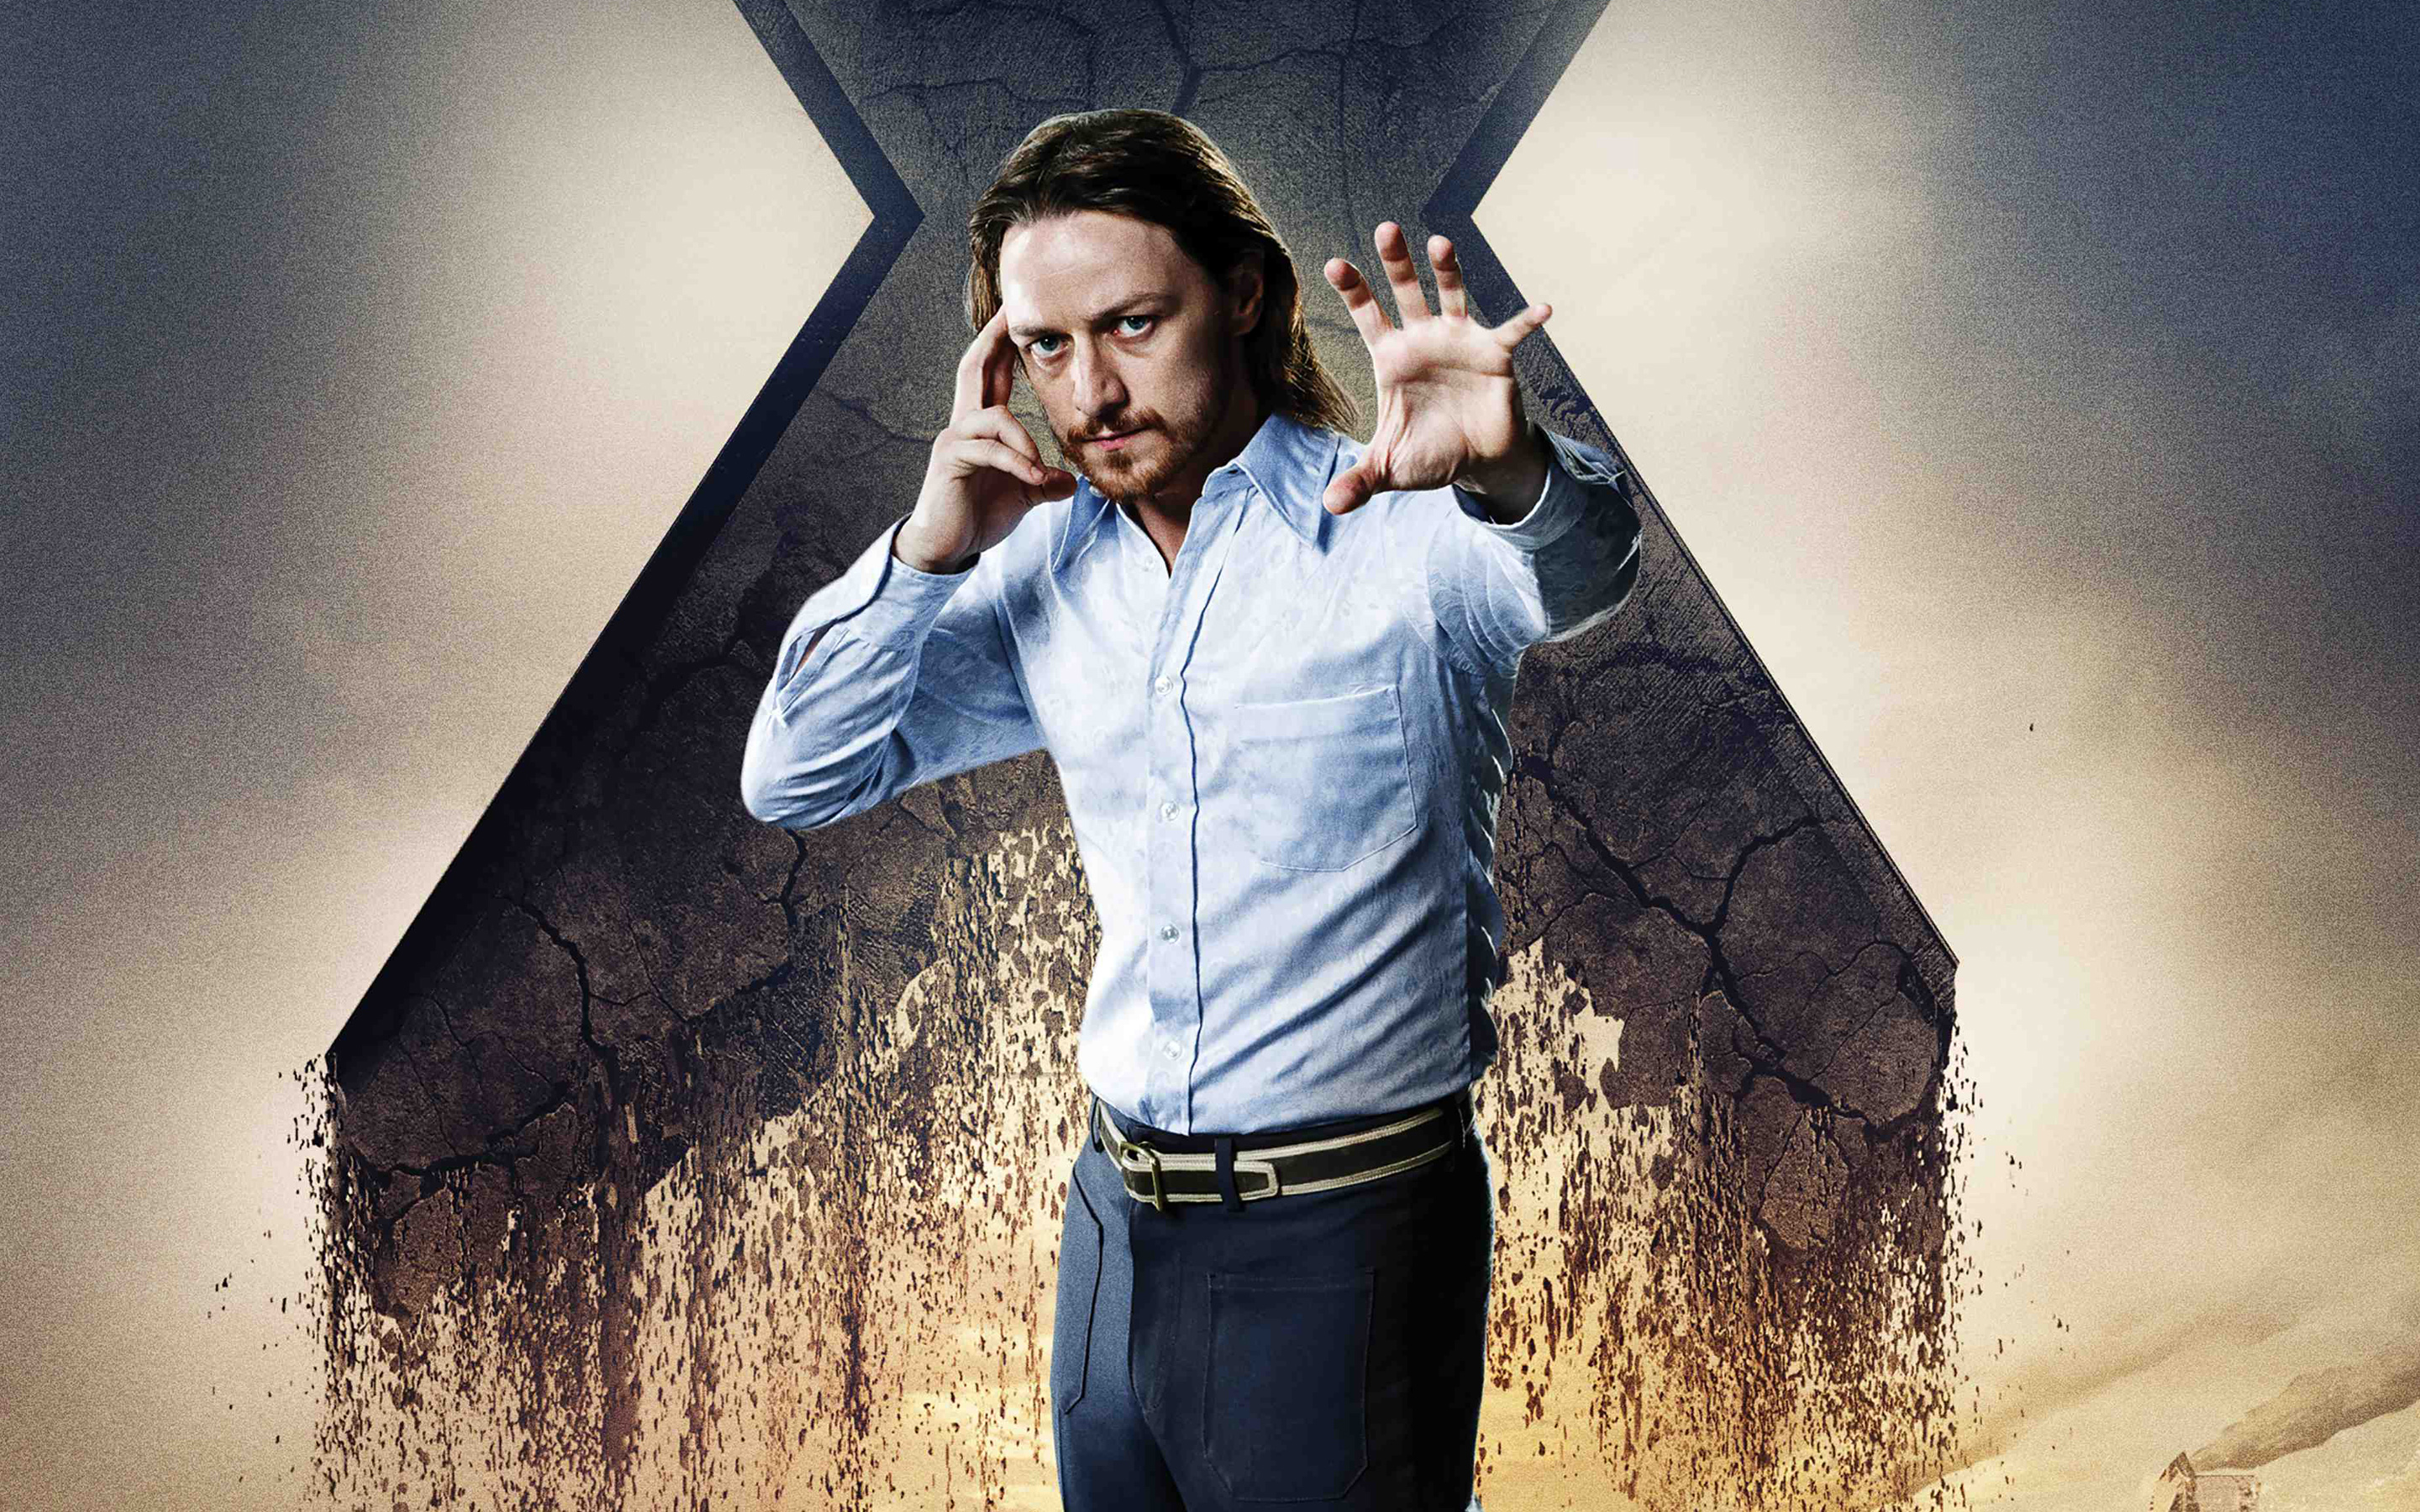 2880x1800 - James McAvoy Wallpapers 17